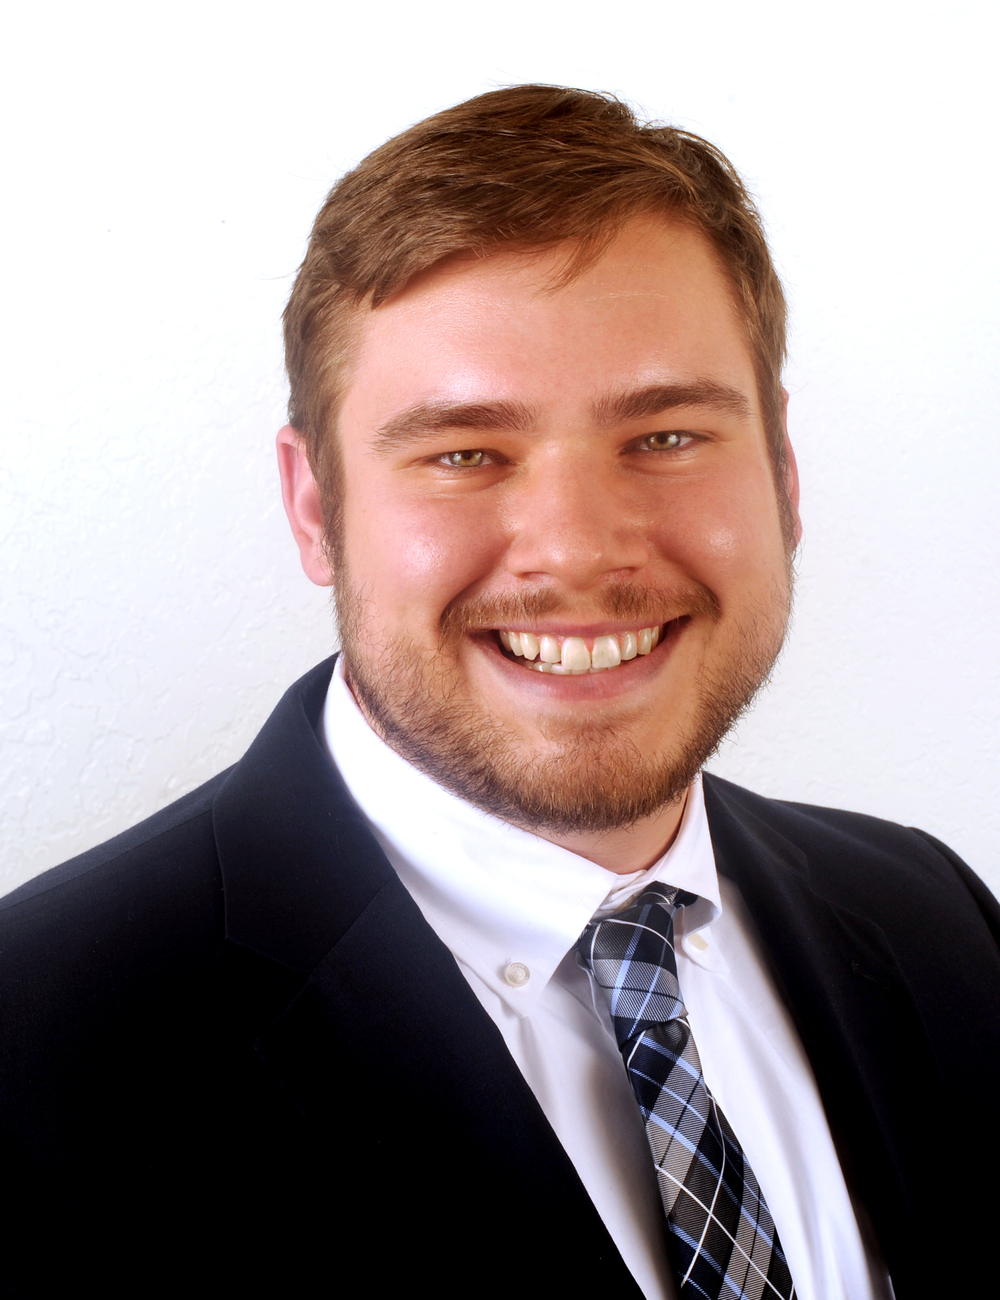 AUSTIN LYNCH - BARNETT & HILL REAL ESTATE - ABILENE, TX